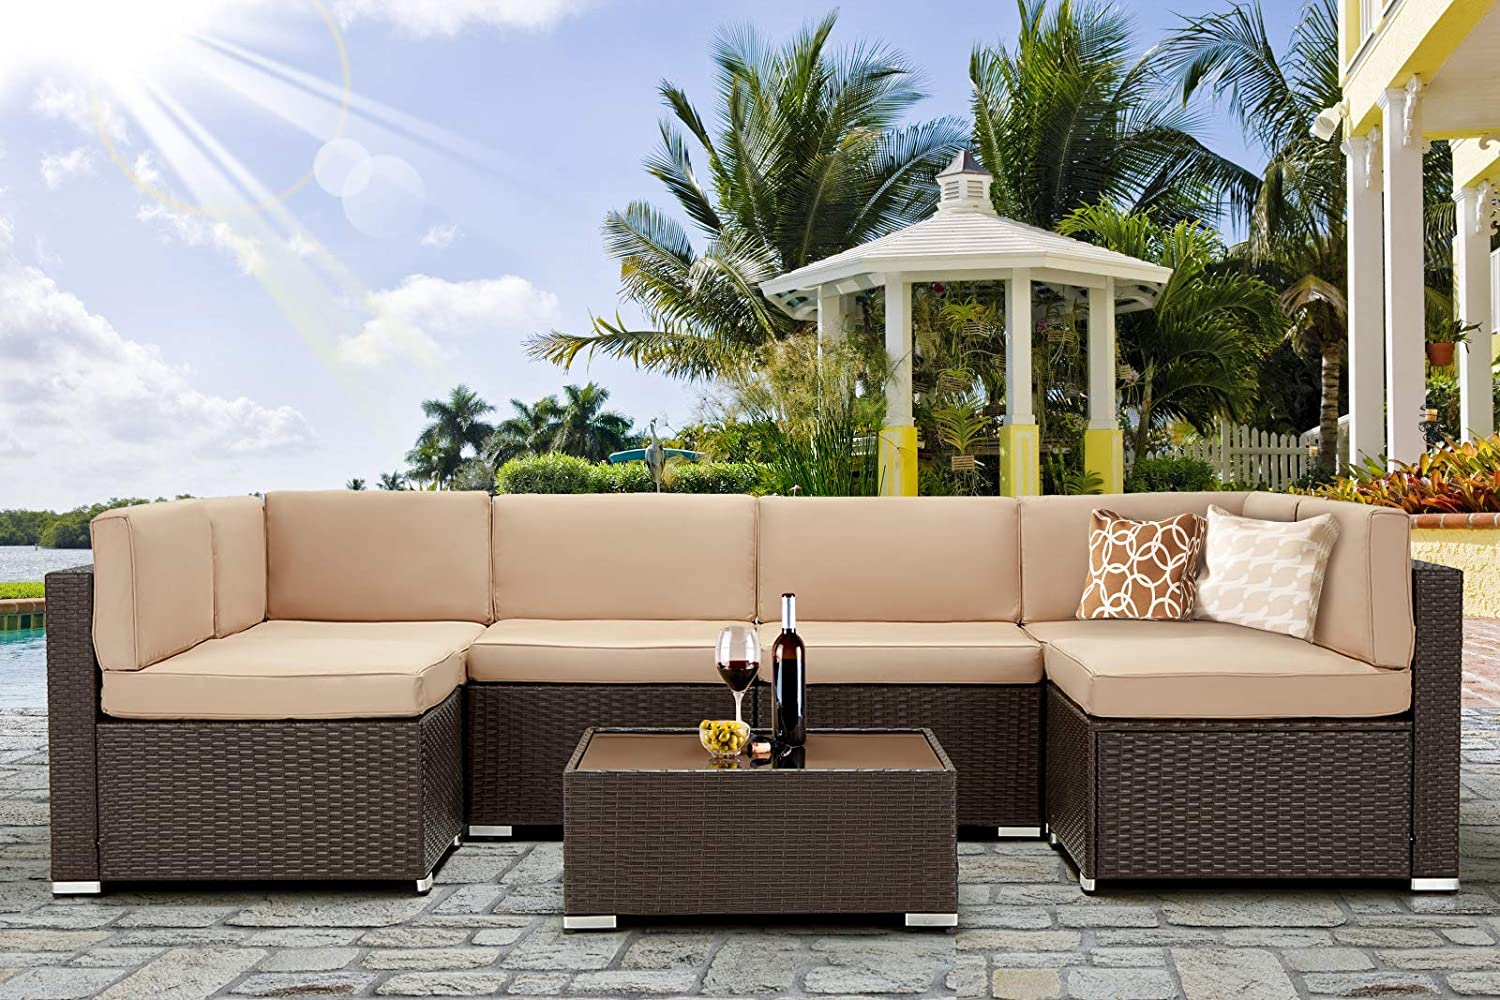 U Max 7 Piece Outdoor Patio Furniture Set Pe Rattan Wicker Sofa Set Outdoor Sectional Furniture Chair Set With Khaki Cushions And Tea Table Brown Garden Outdoor